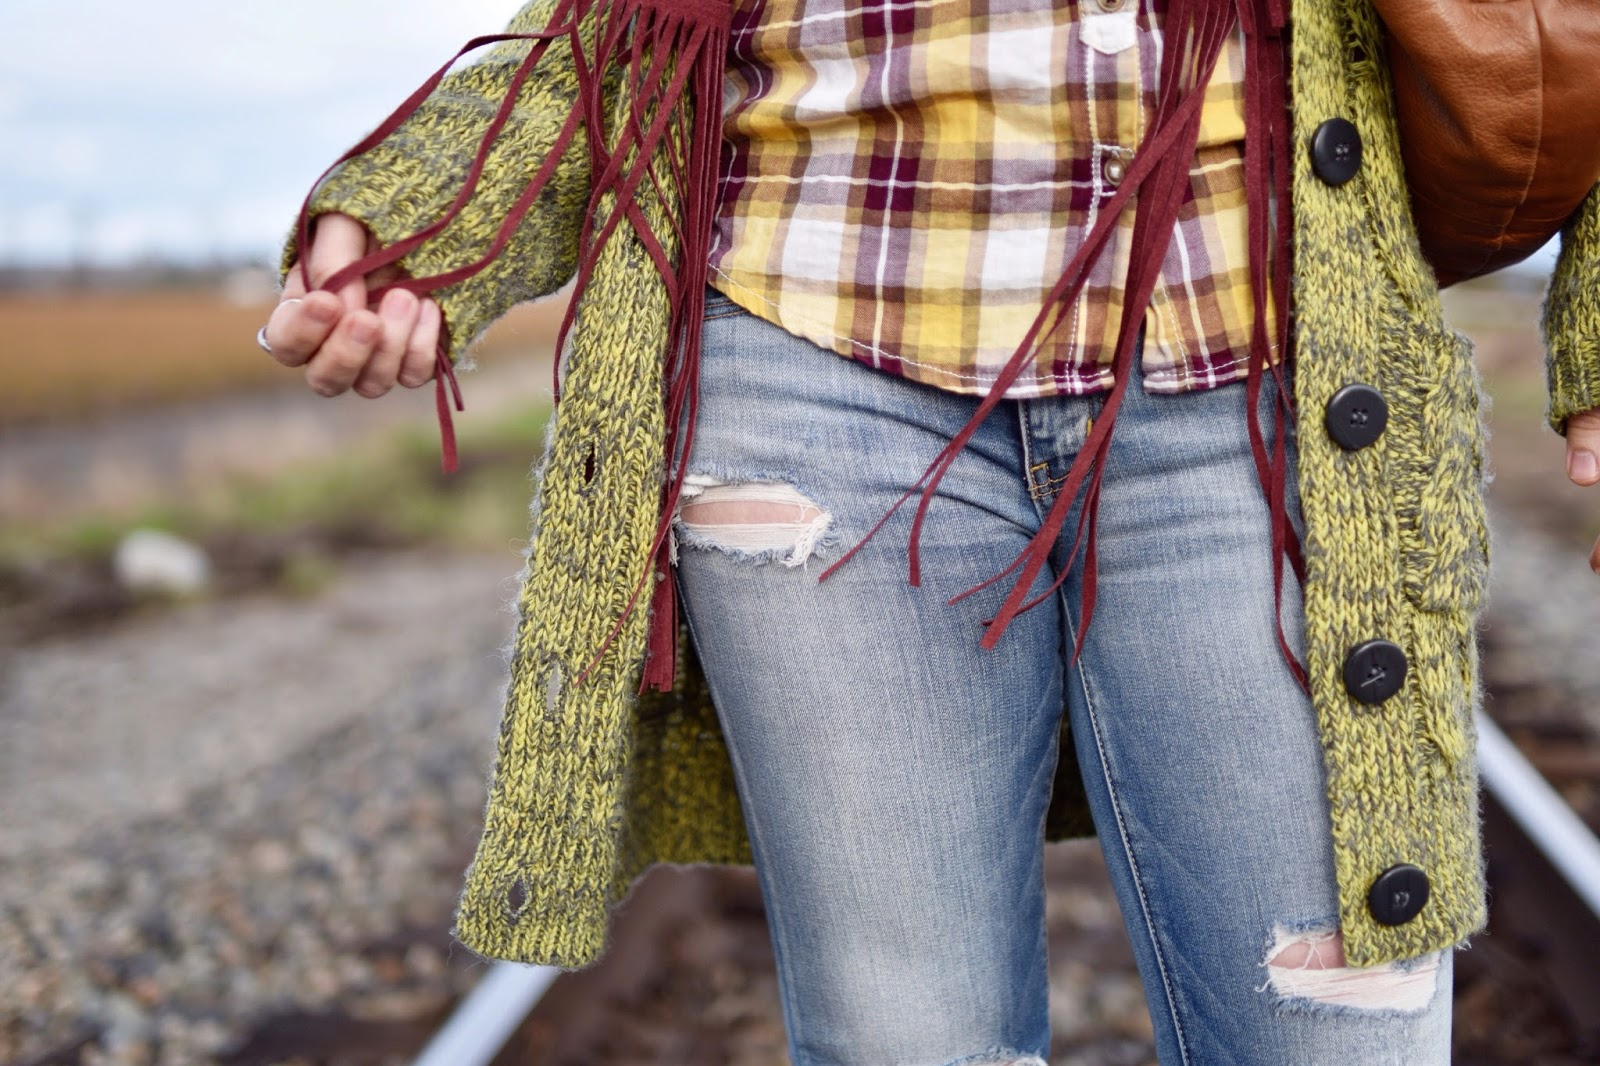 Monika Faulkner outfit inspiration - plaid shirt, fringy suede vest, distressed jeans, slouchy cardigan